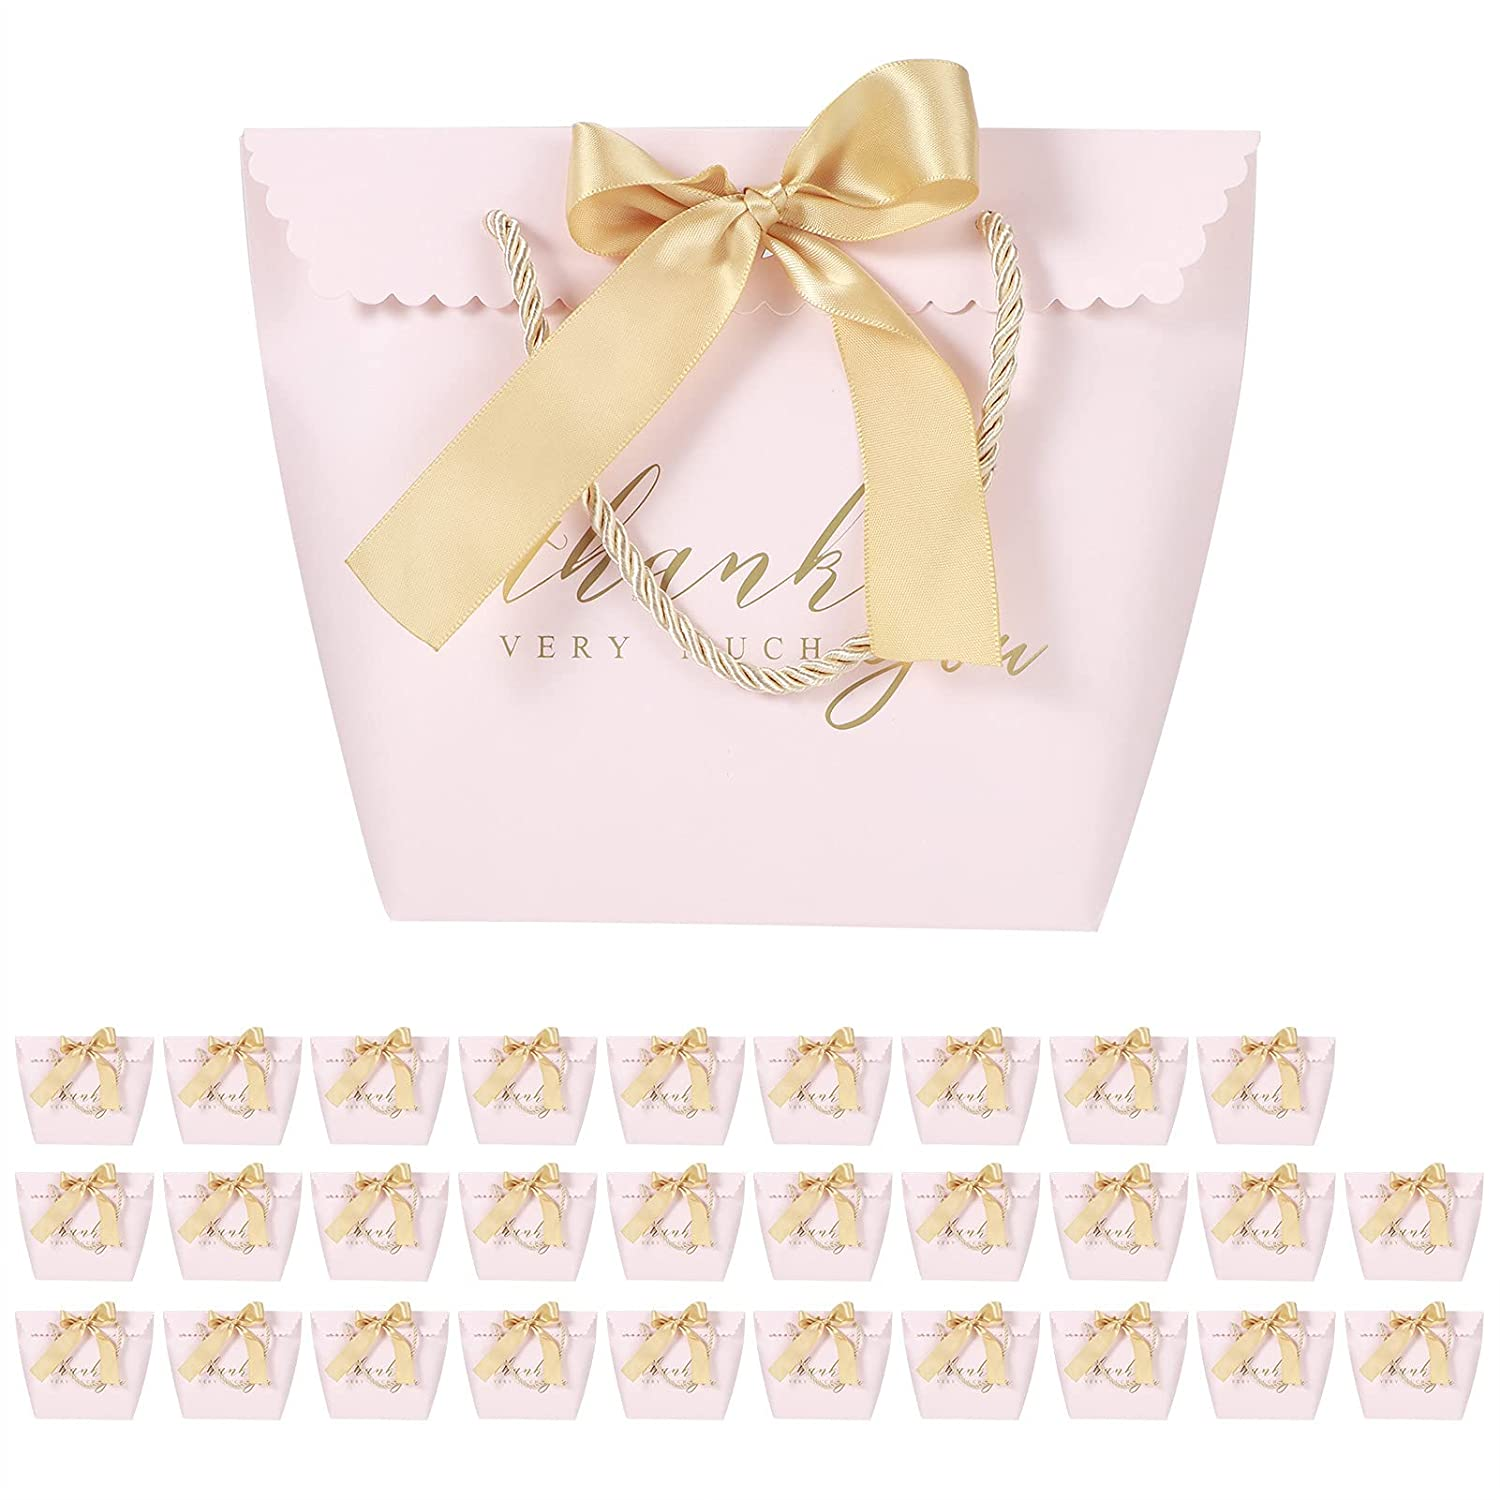 MossEle 30PCS Portable Small Candy Max 74% OFF Bag Box Decoration Gift Save money E for